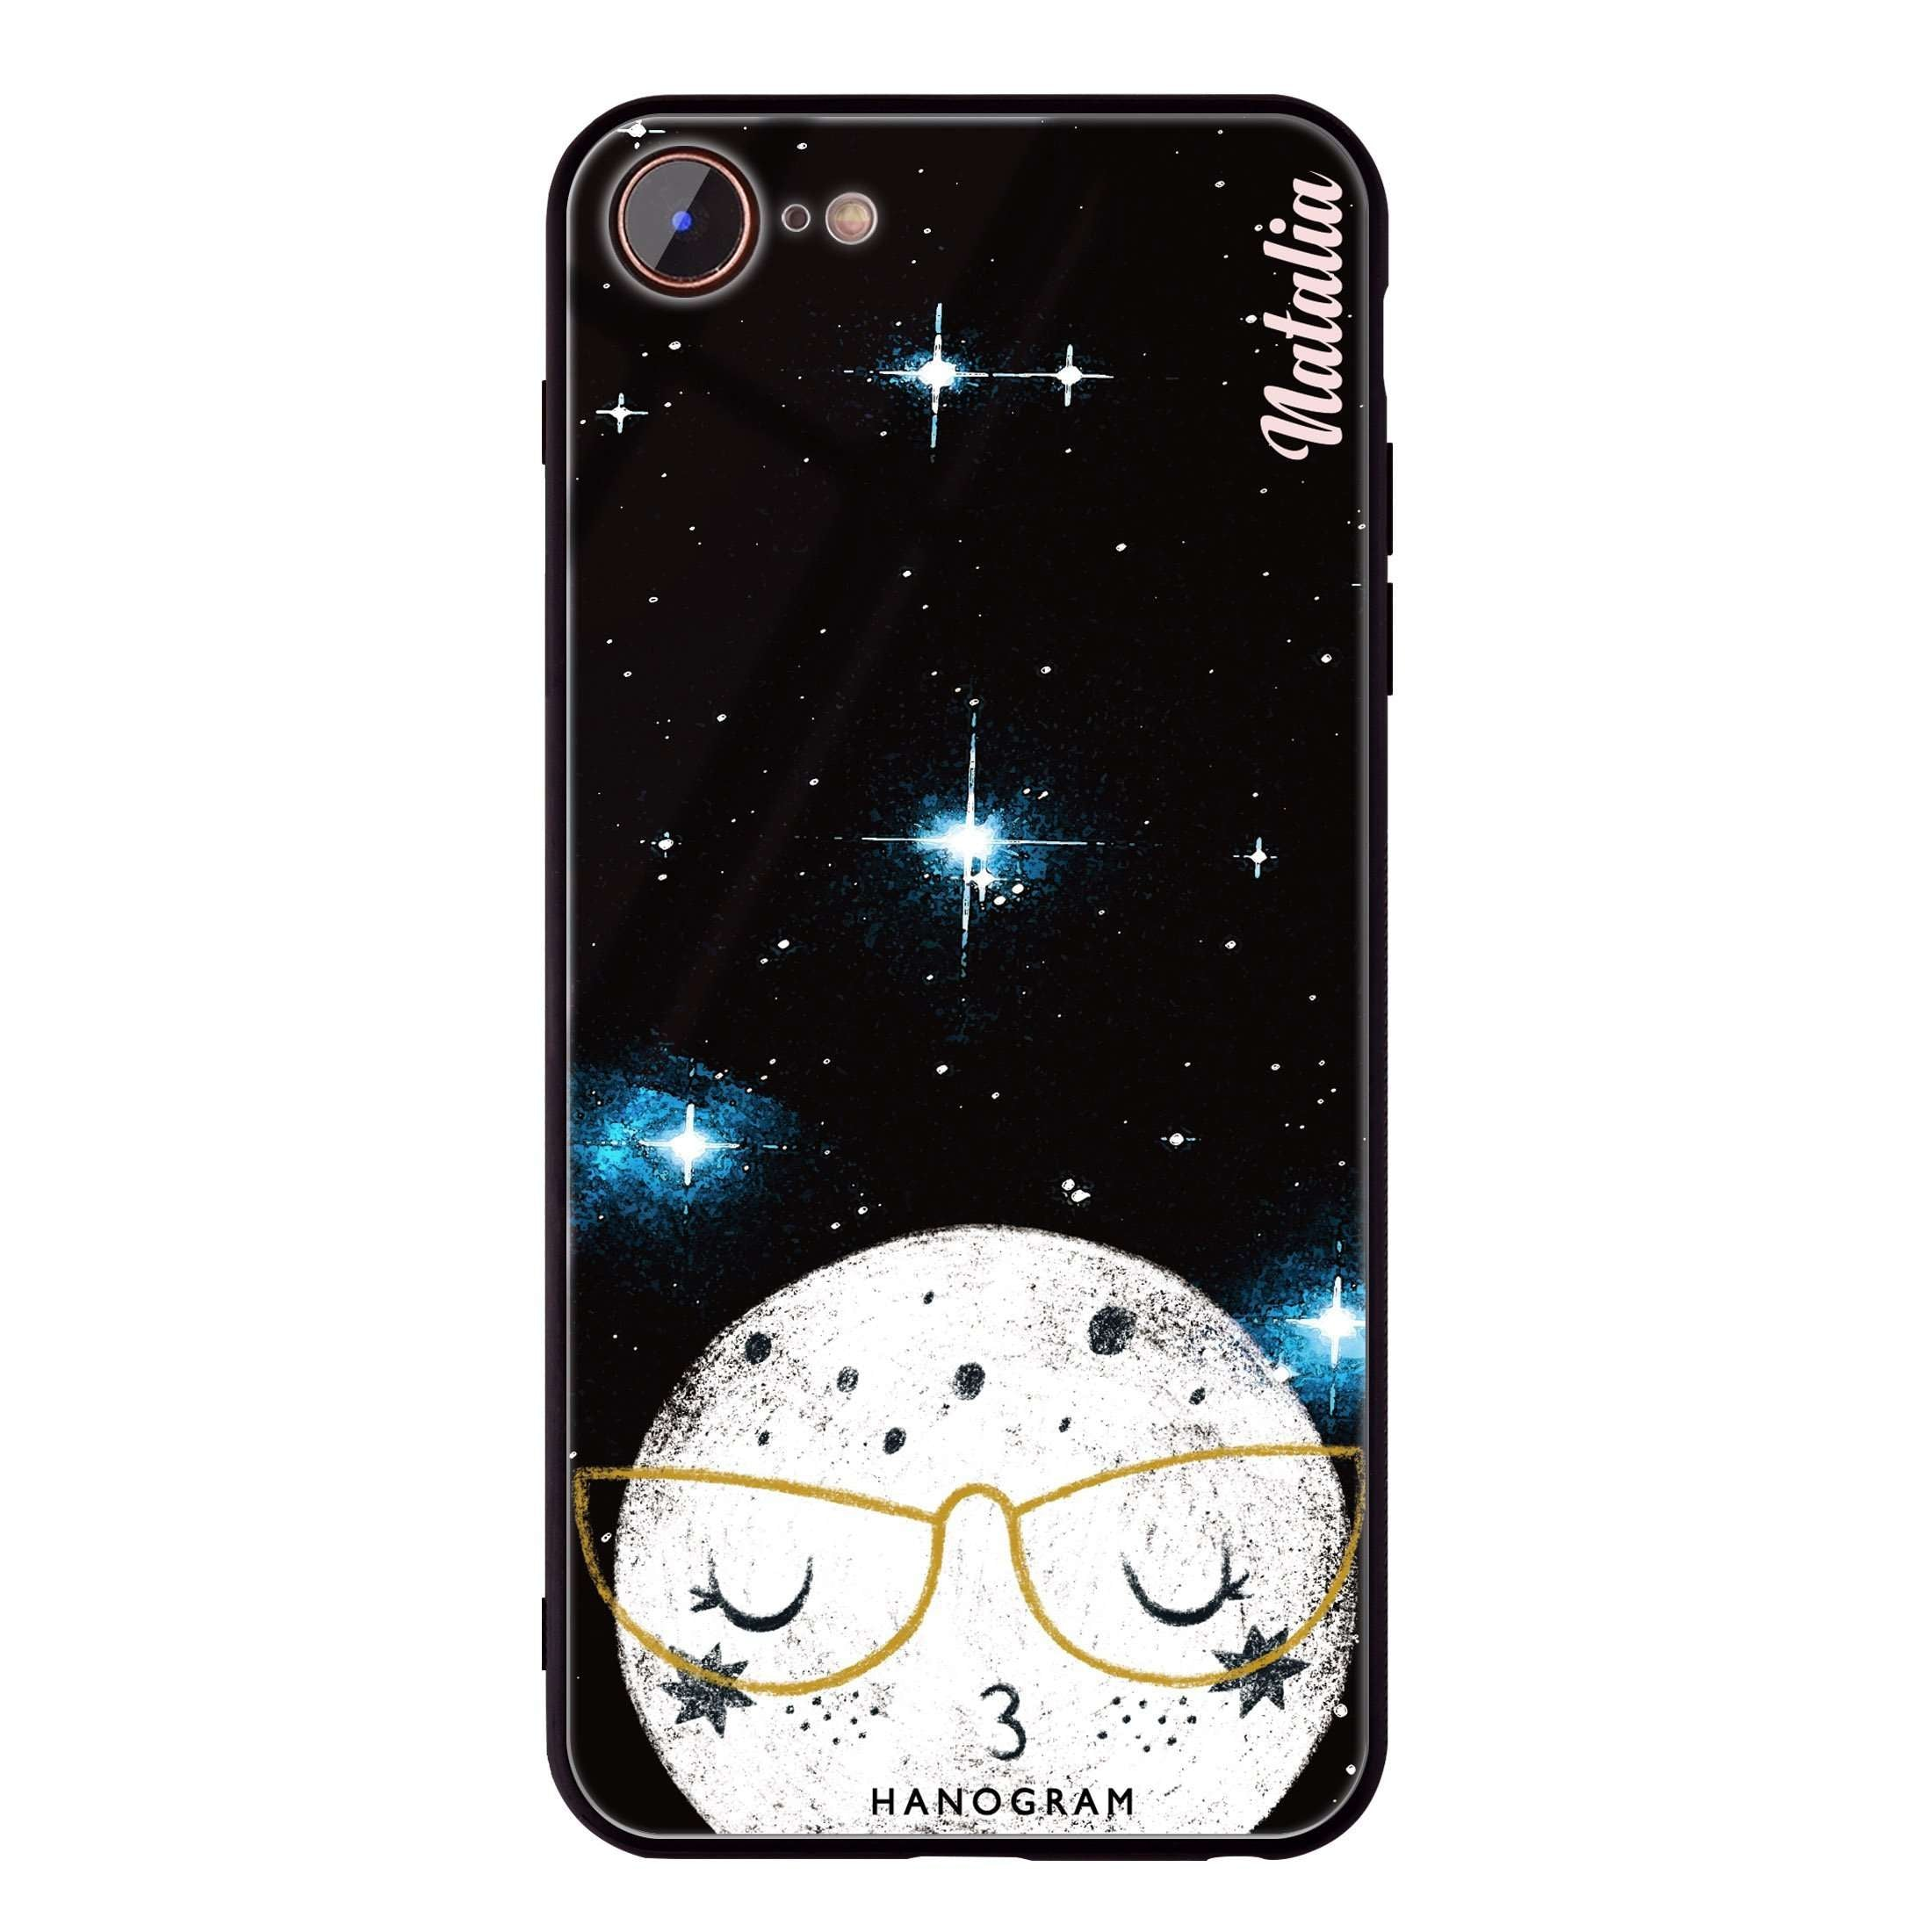 glasses case iphone 8